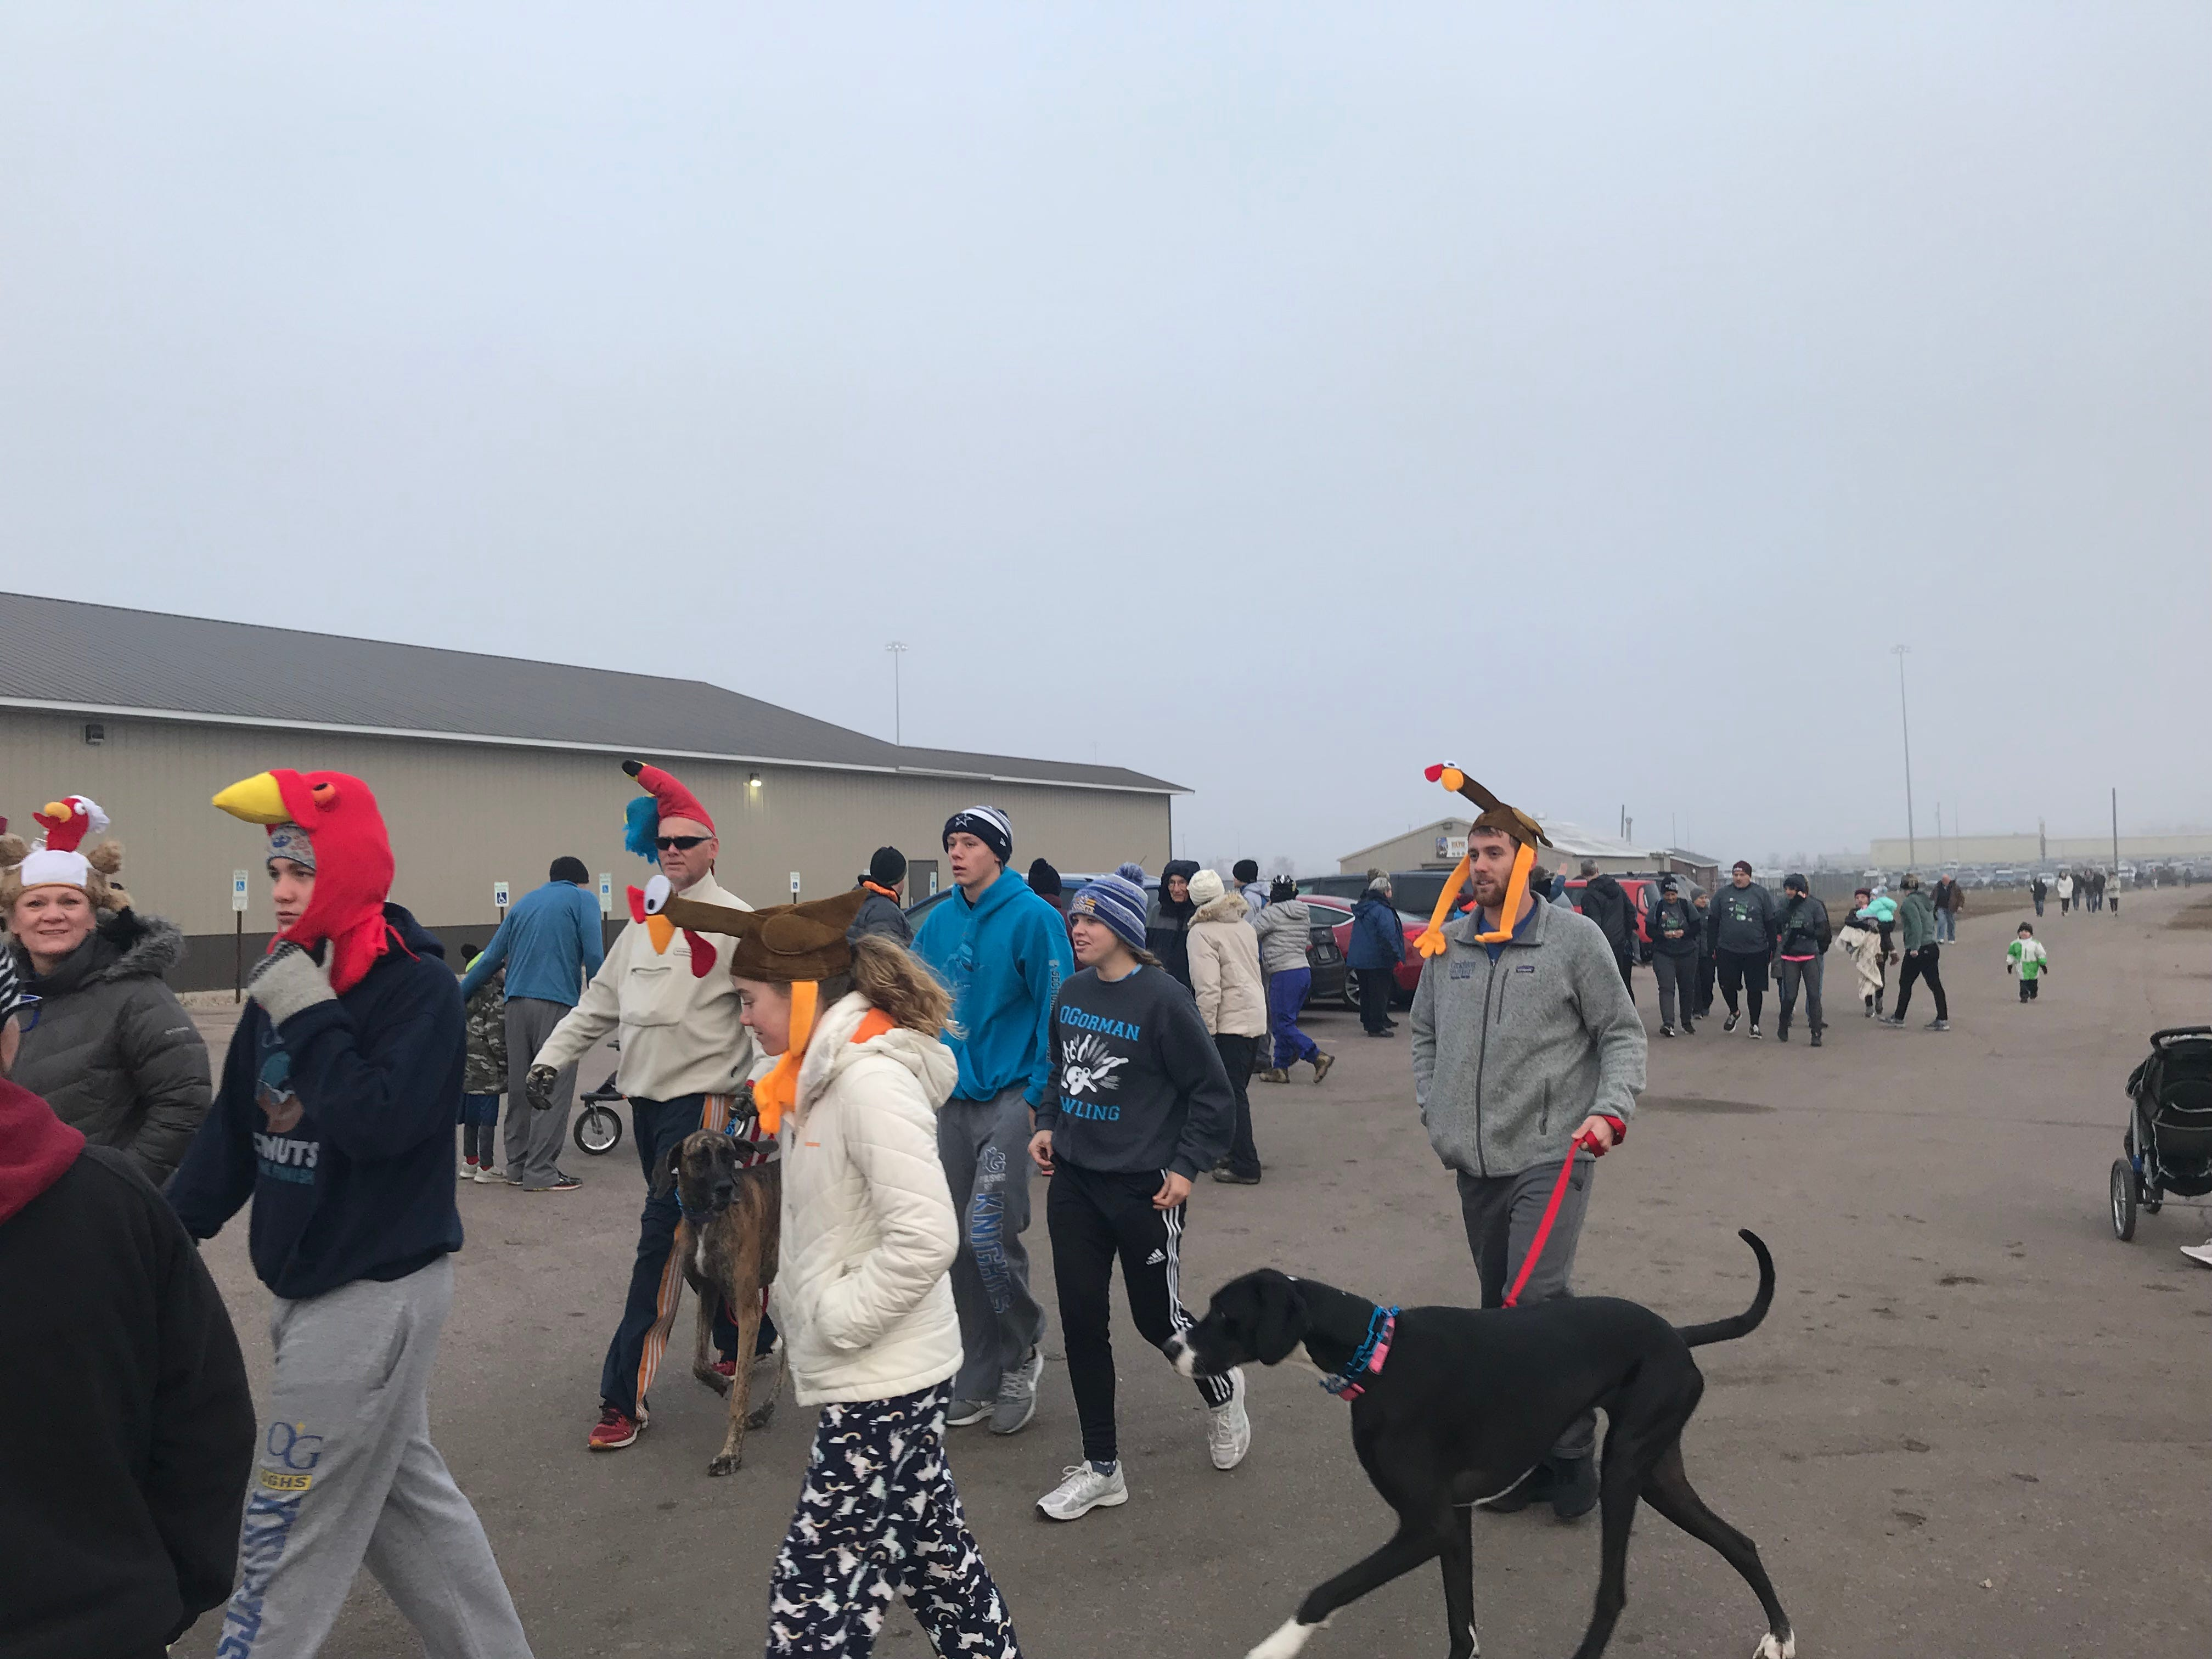 A group of runners arrive in turkey hats for the 2018 Run for Food. The event benefits the Banquet, which serves hot meals to Sioux Falls' hungry.